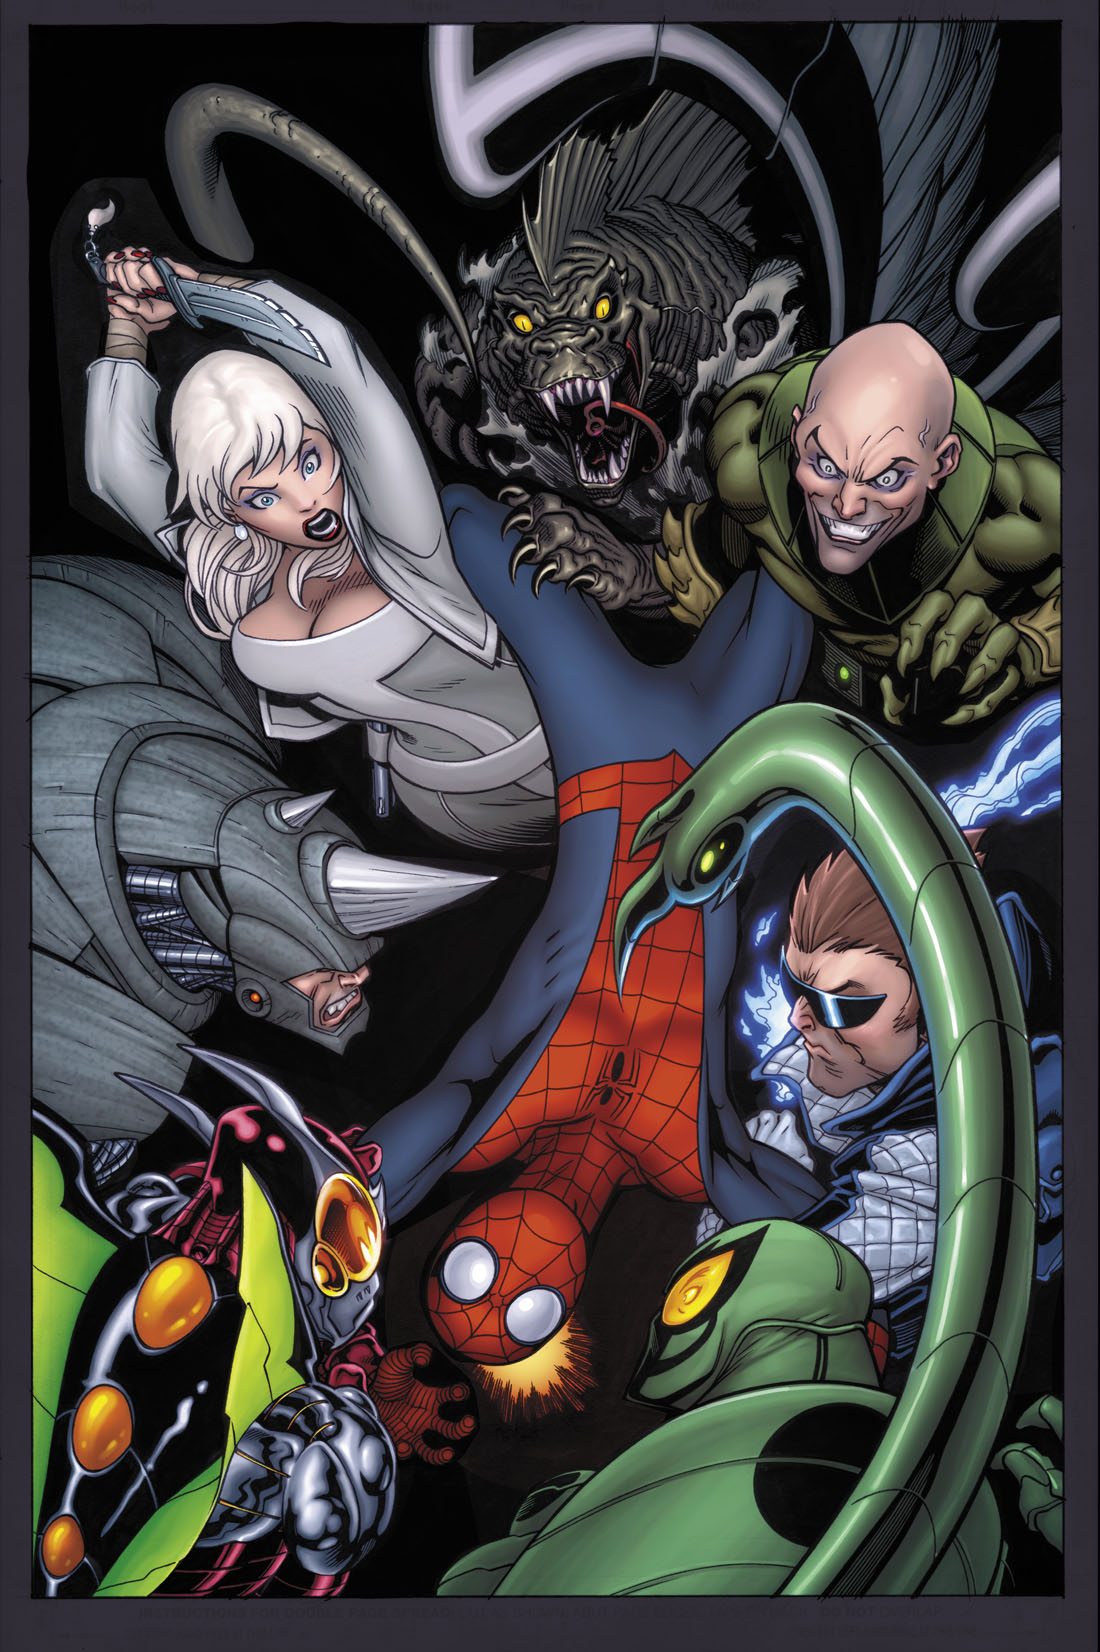 UCSPIDERMAN_153 First Look At McGuinness and McNiven's DEATH OF SPIDER-MAN Covers